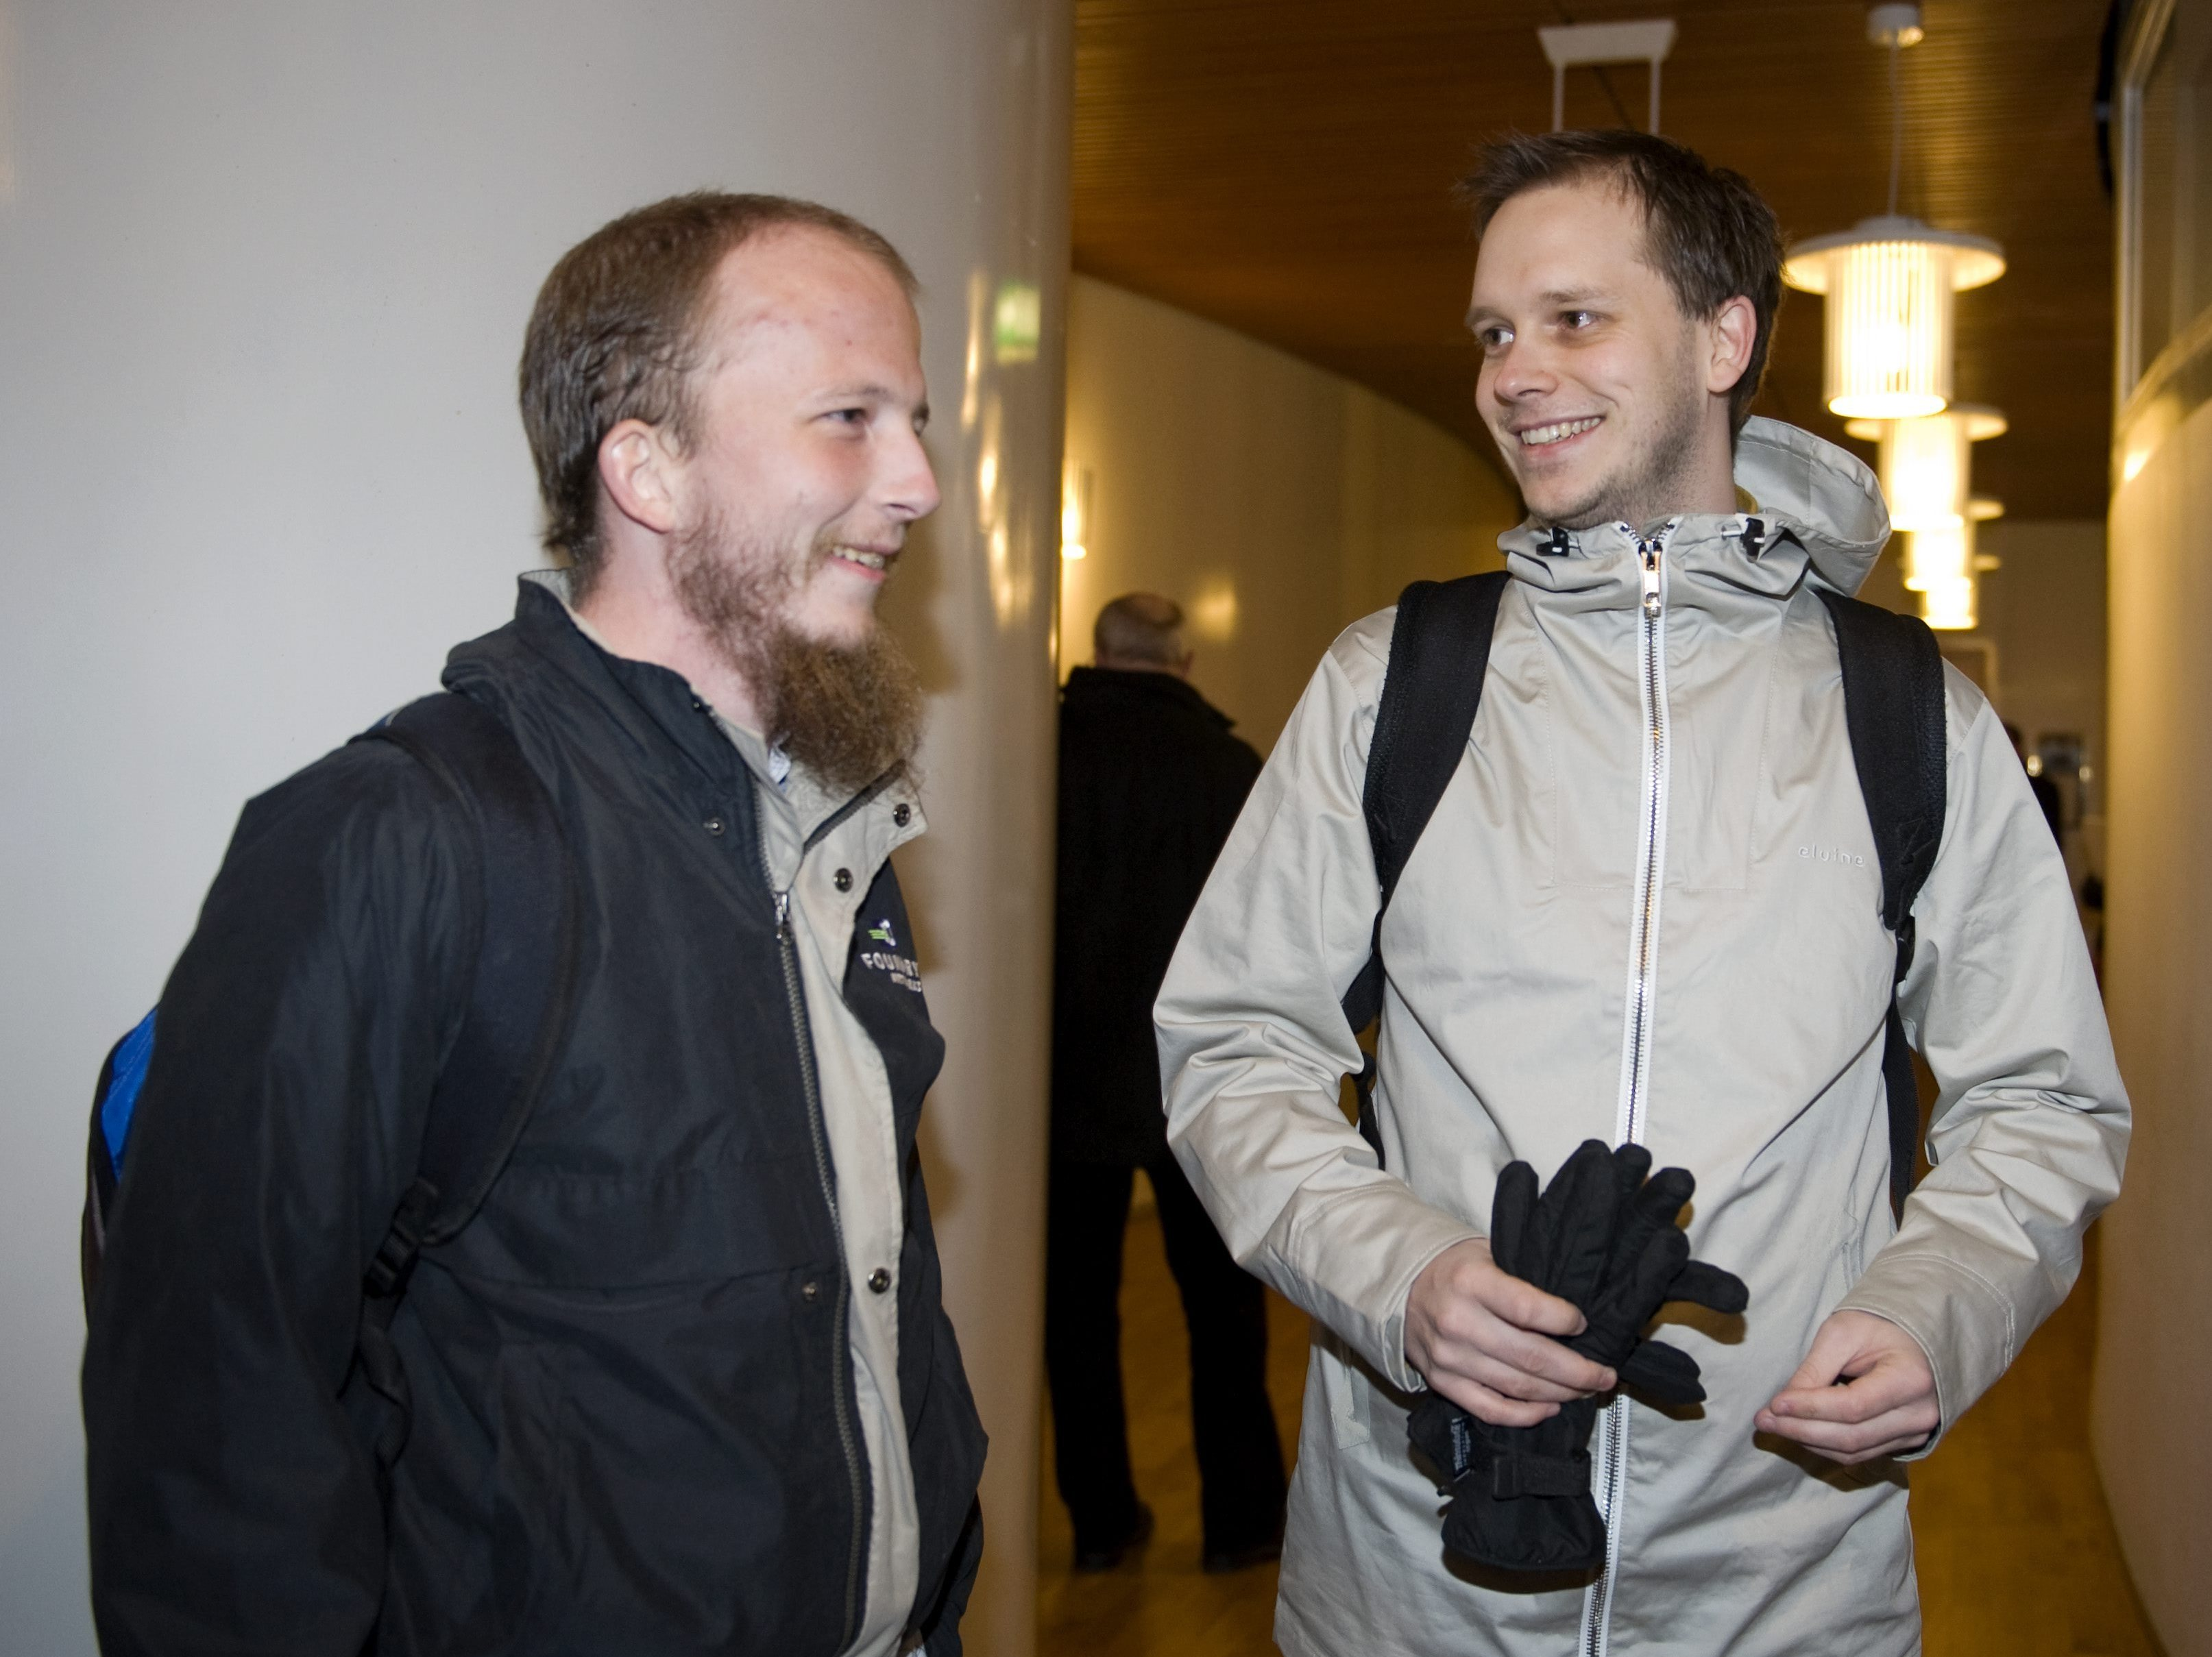 Pirate Bay Co-Founder Gets Two Years For Hacking And Fraud